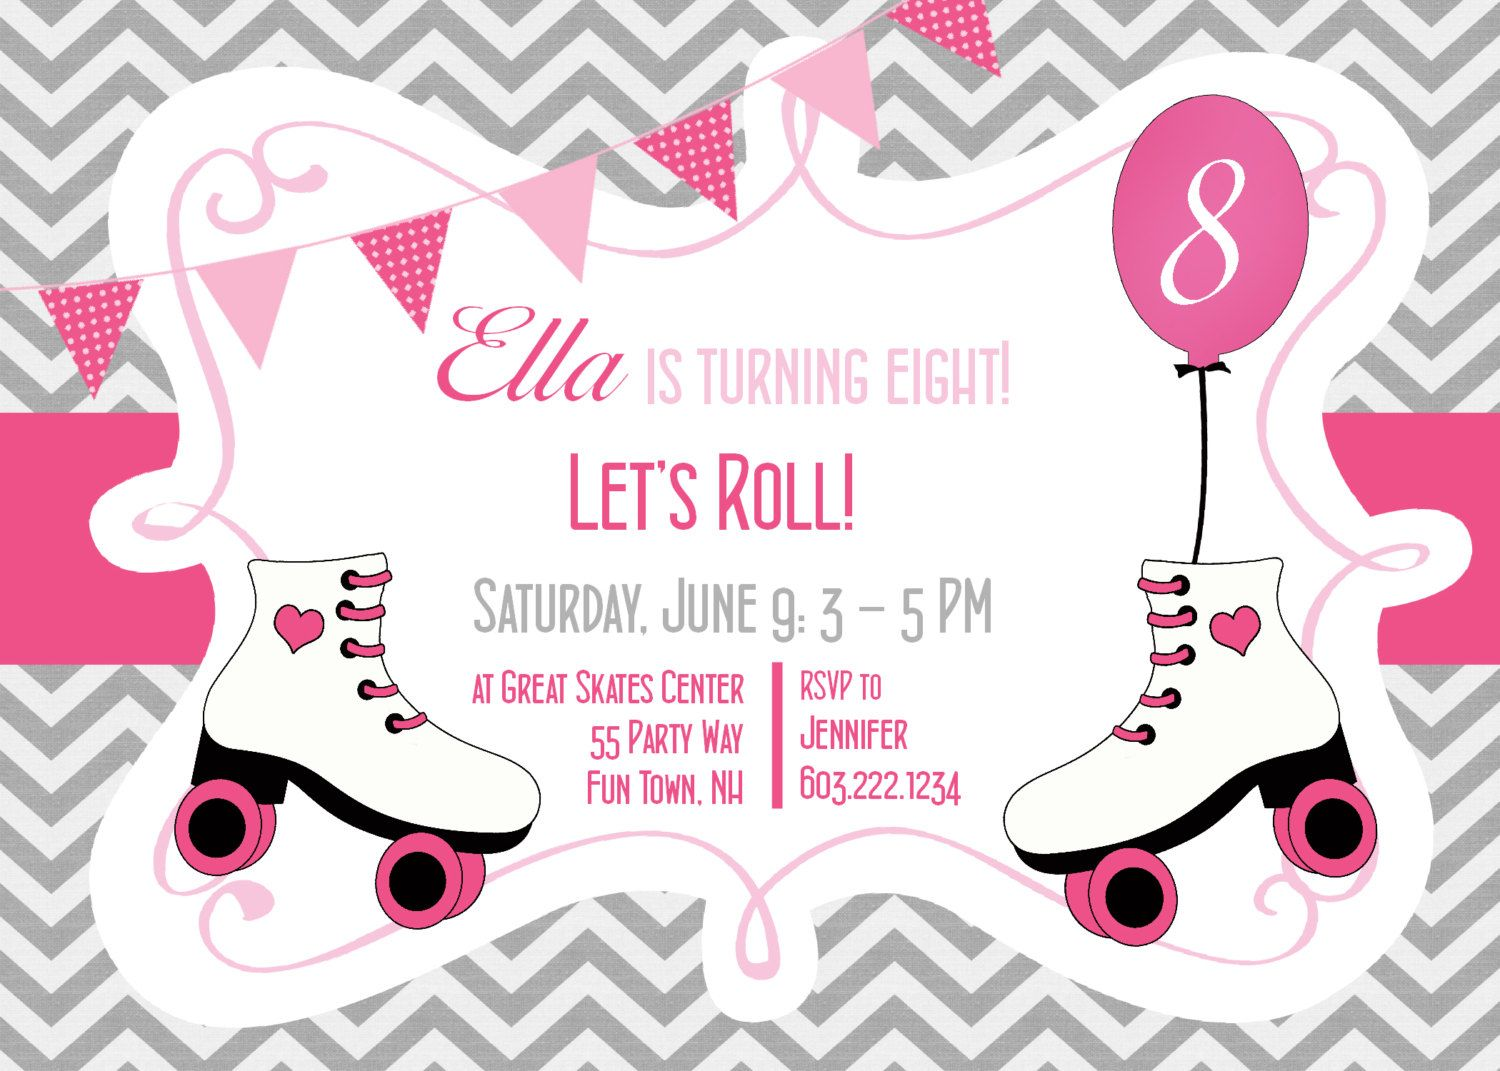 Roller skating birthday party invitation printable rollerskating roller skating birthday party invitation chevron roller skating birthday party girl pink gray filmwisefo Gallery